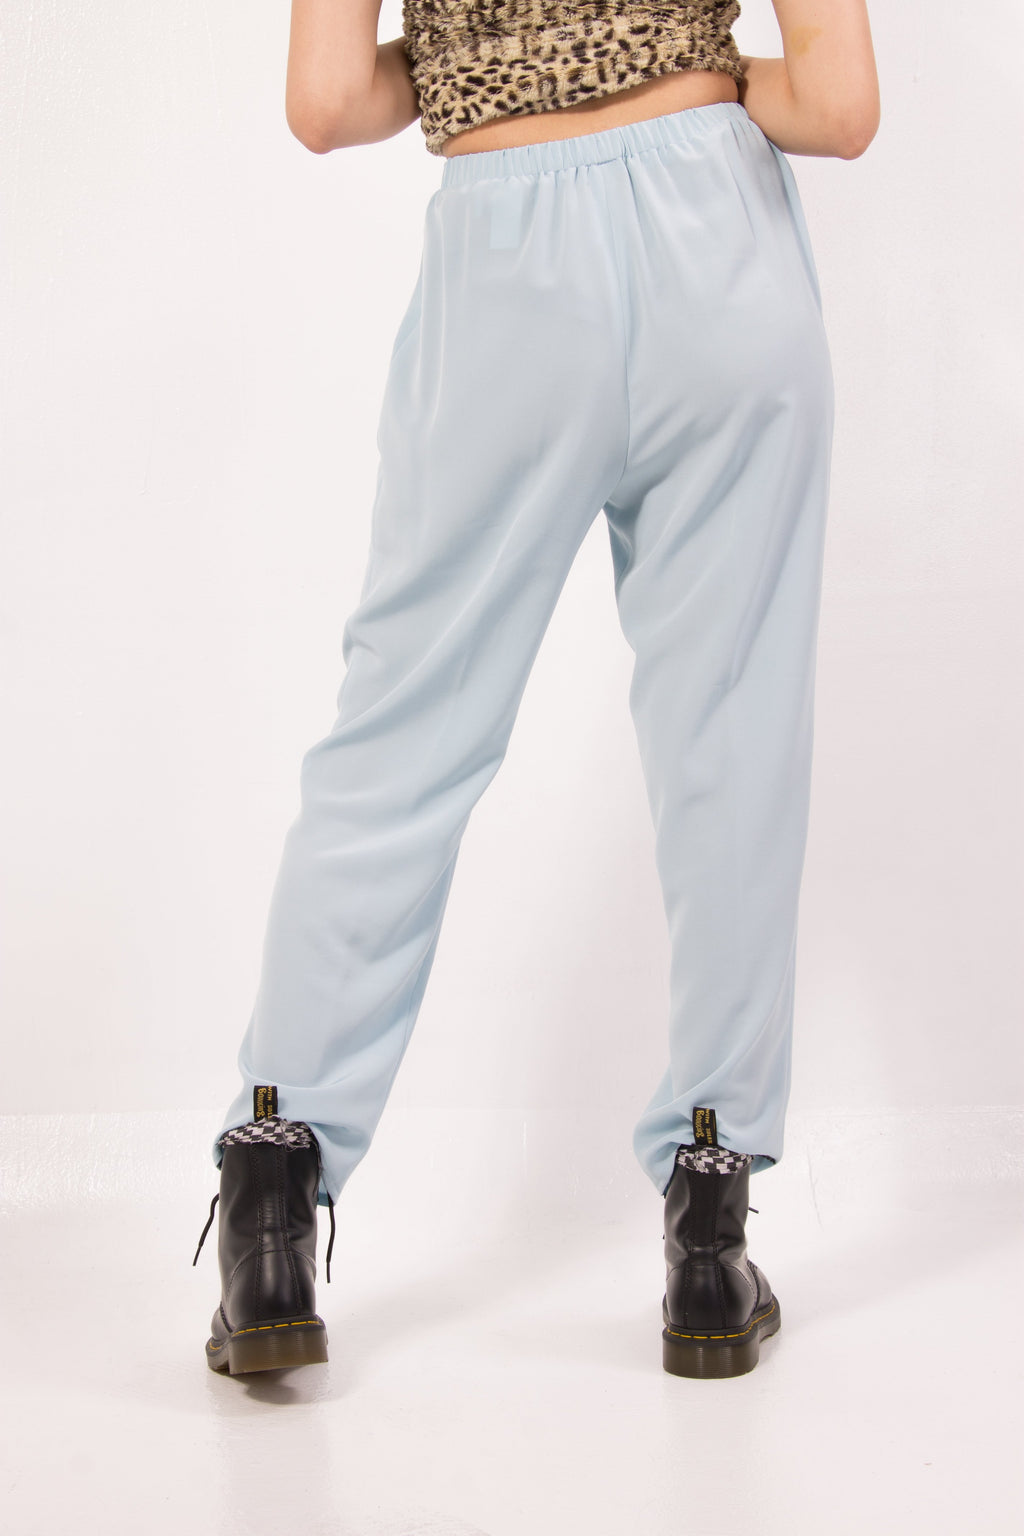 Vintage - blue dreams trousers